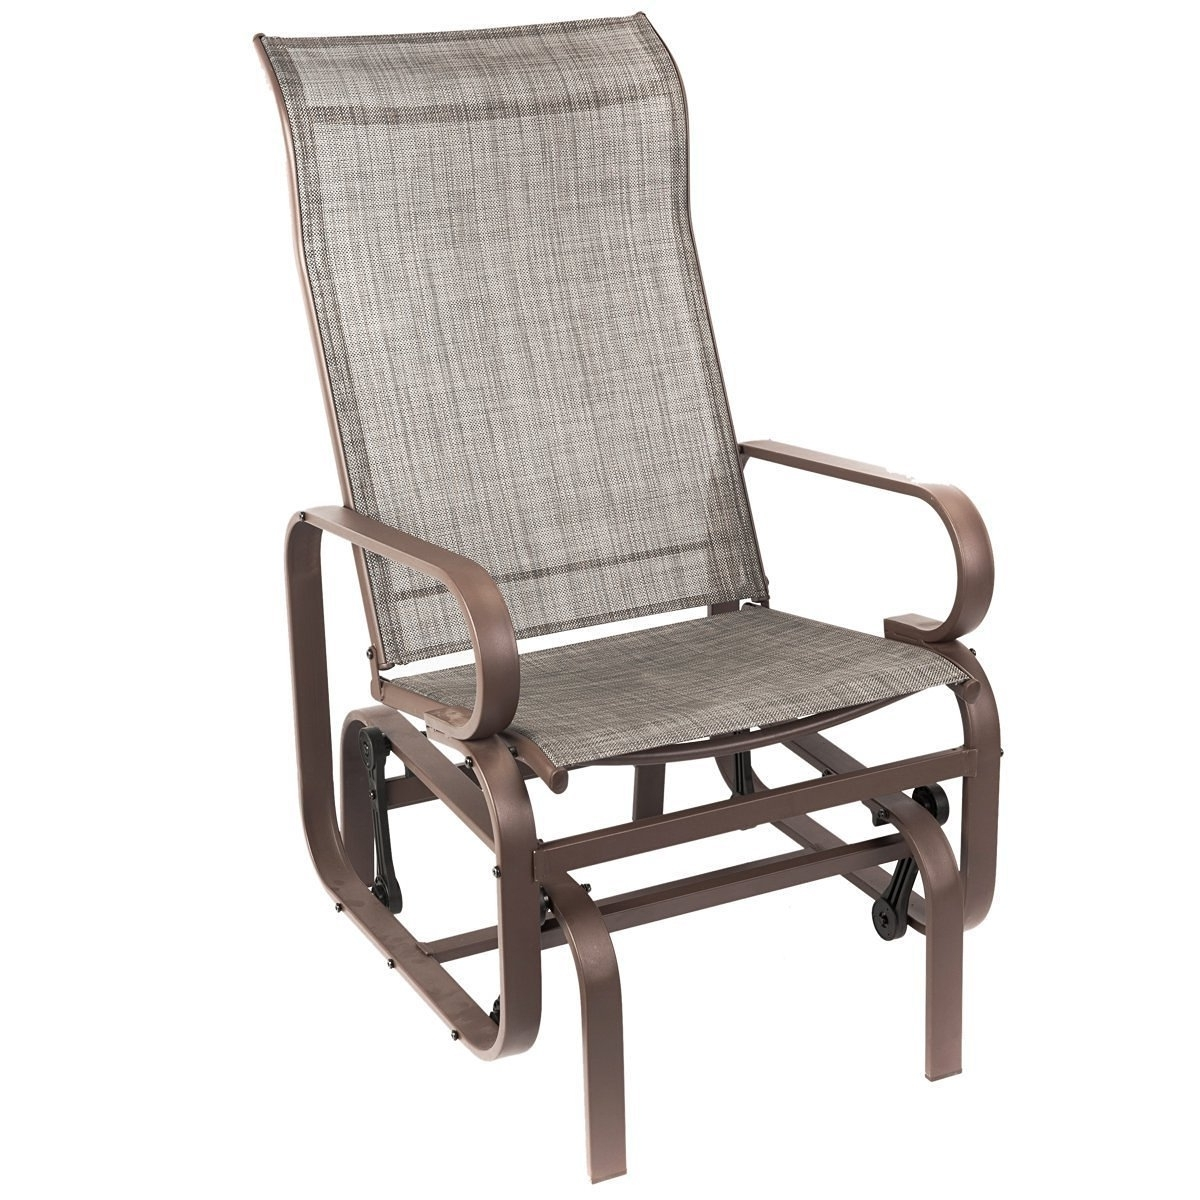 Most Popular Stackable Patio Rocking Chairs Within Resin Outdoor Patio Rocking Chair – Outdoor Designs (View 9 of 20)